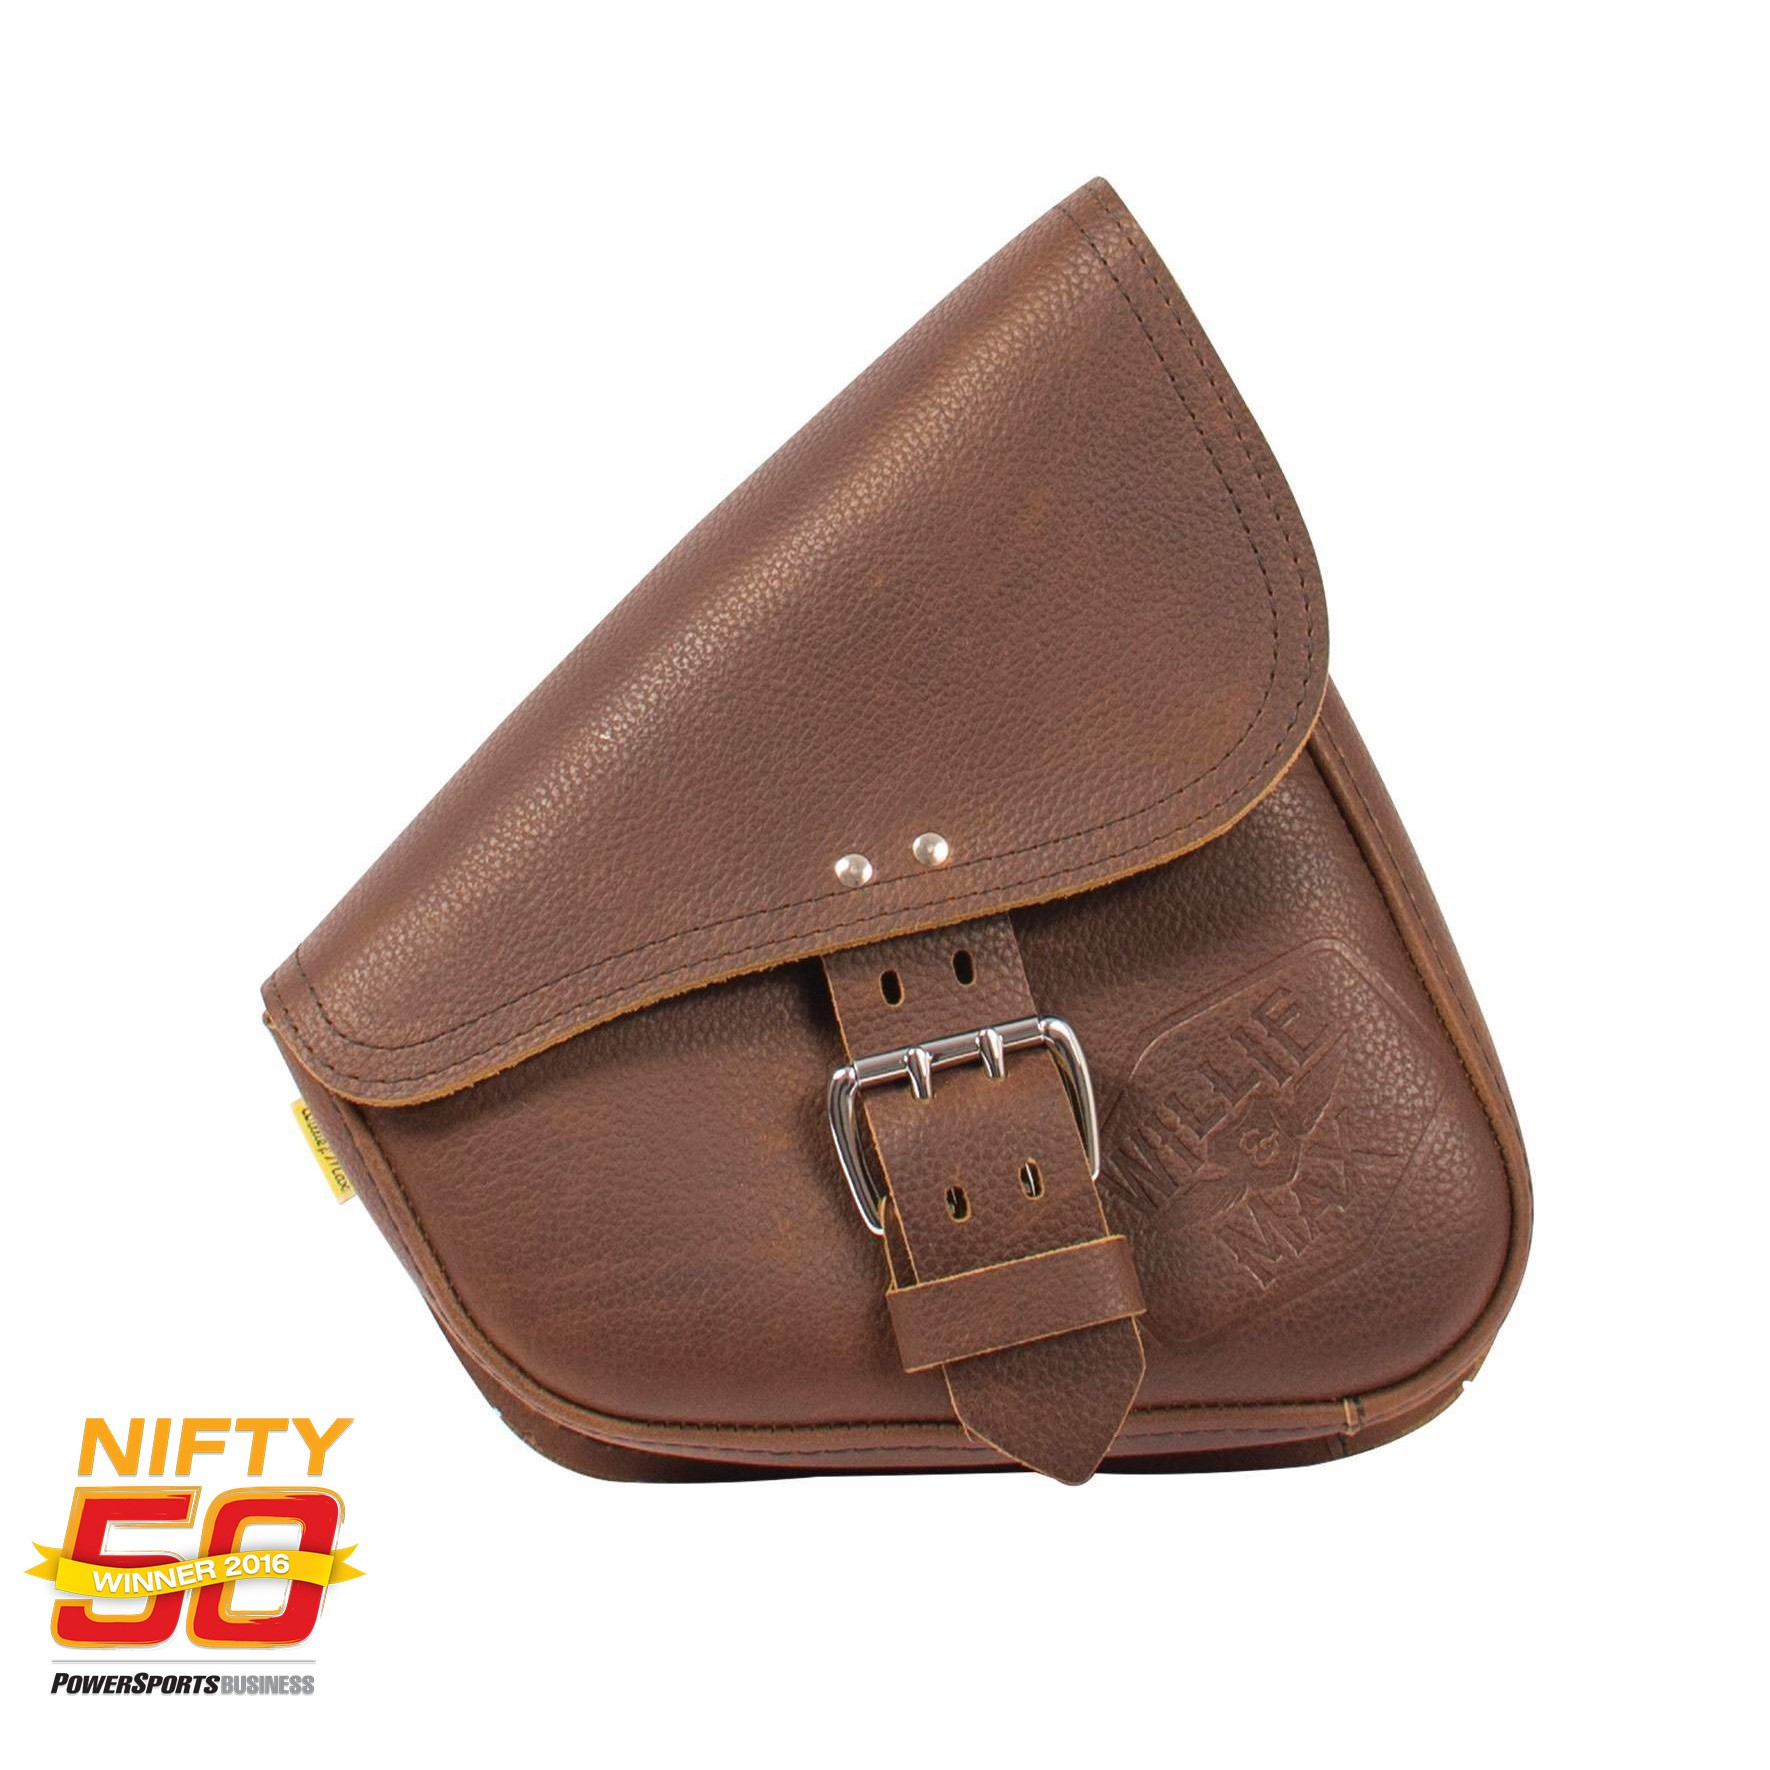 Willie and Max Swingarm Bag Nifty 50 Award